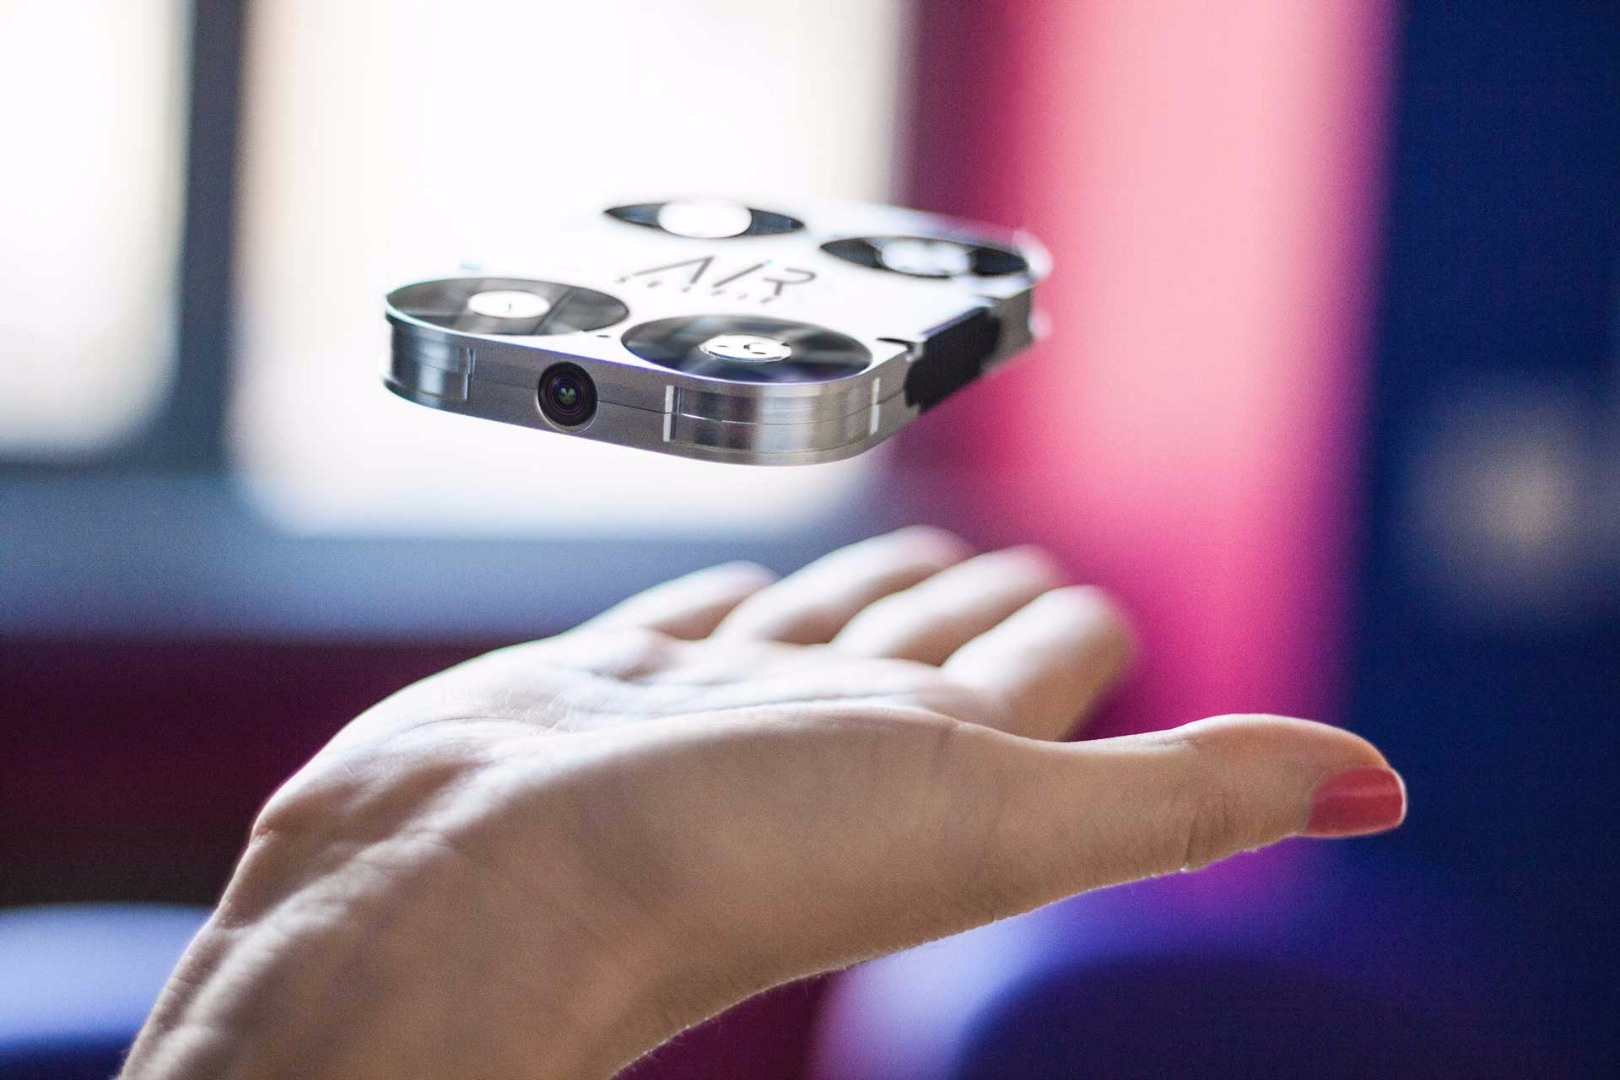 Pocket-sized drone slides right into a smartphone case